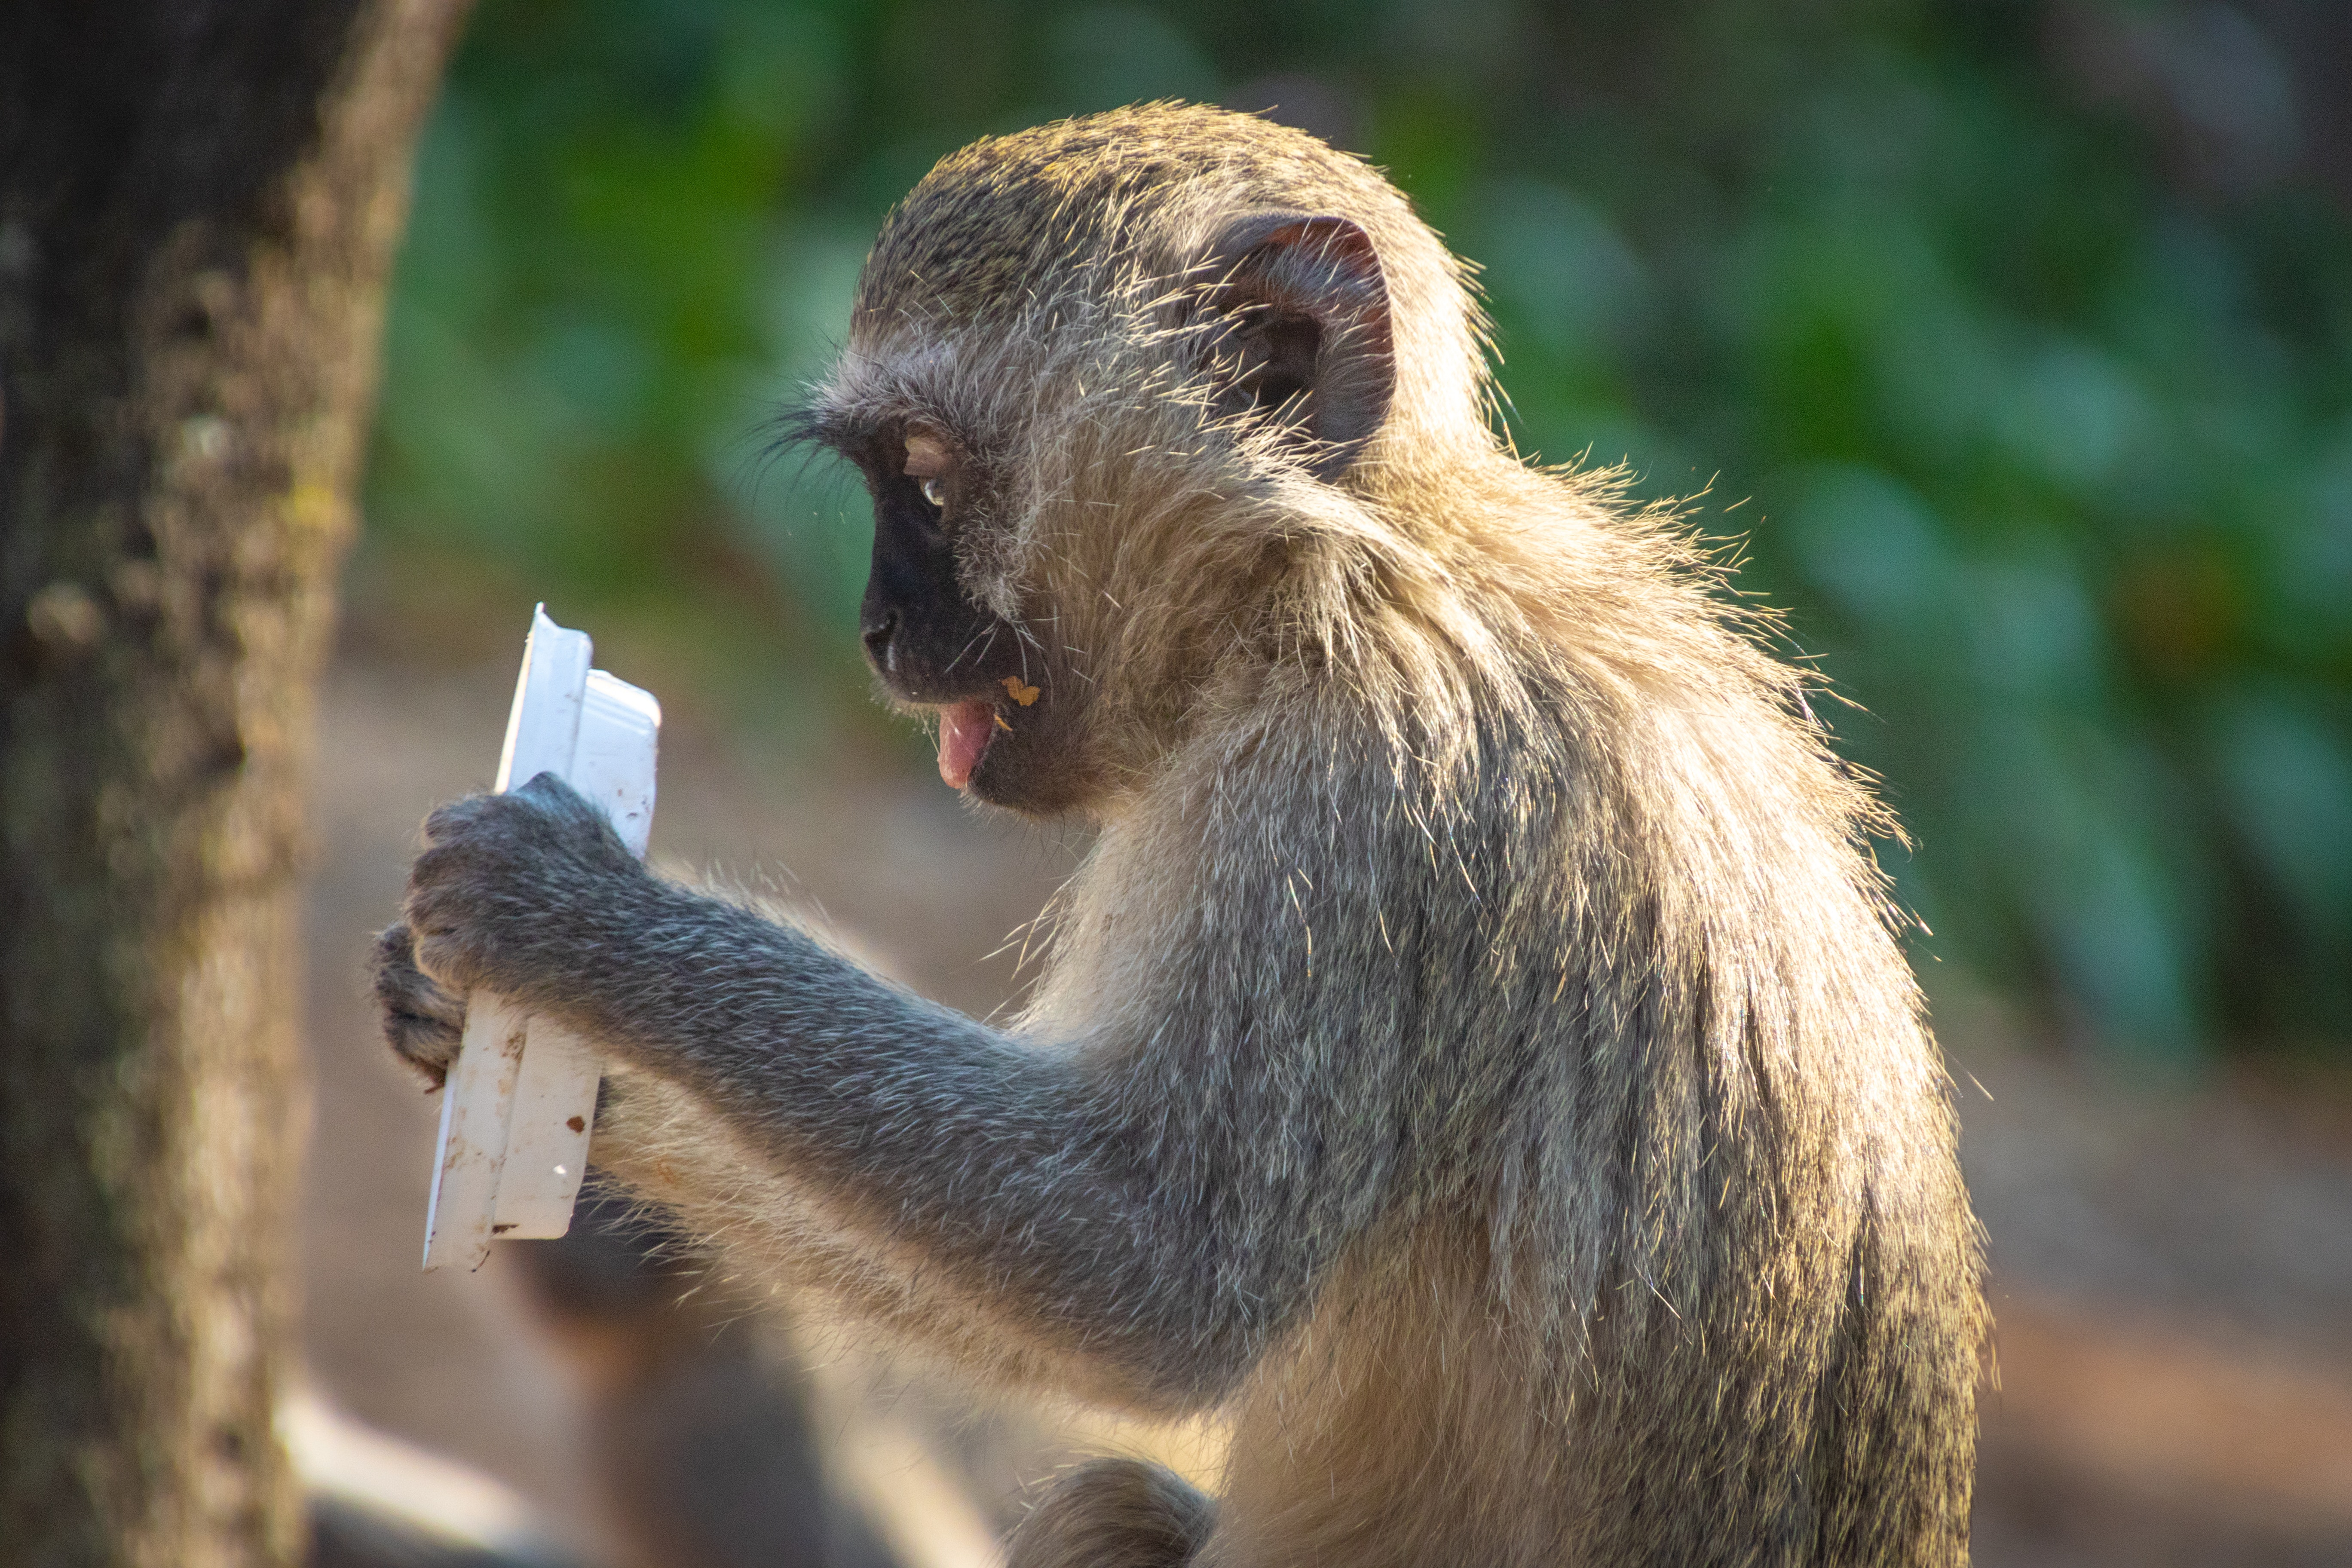 shallow-focus-photography-of-monkey-hold